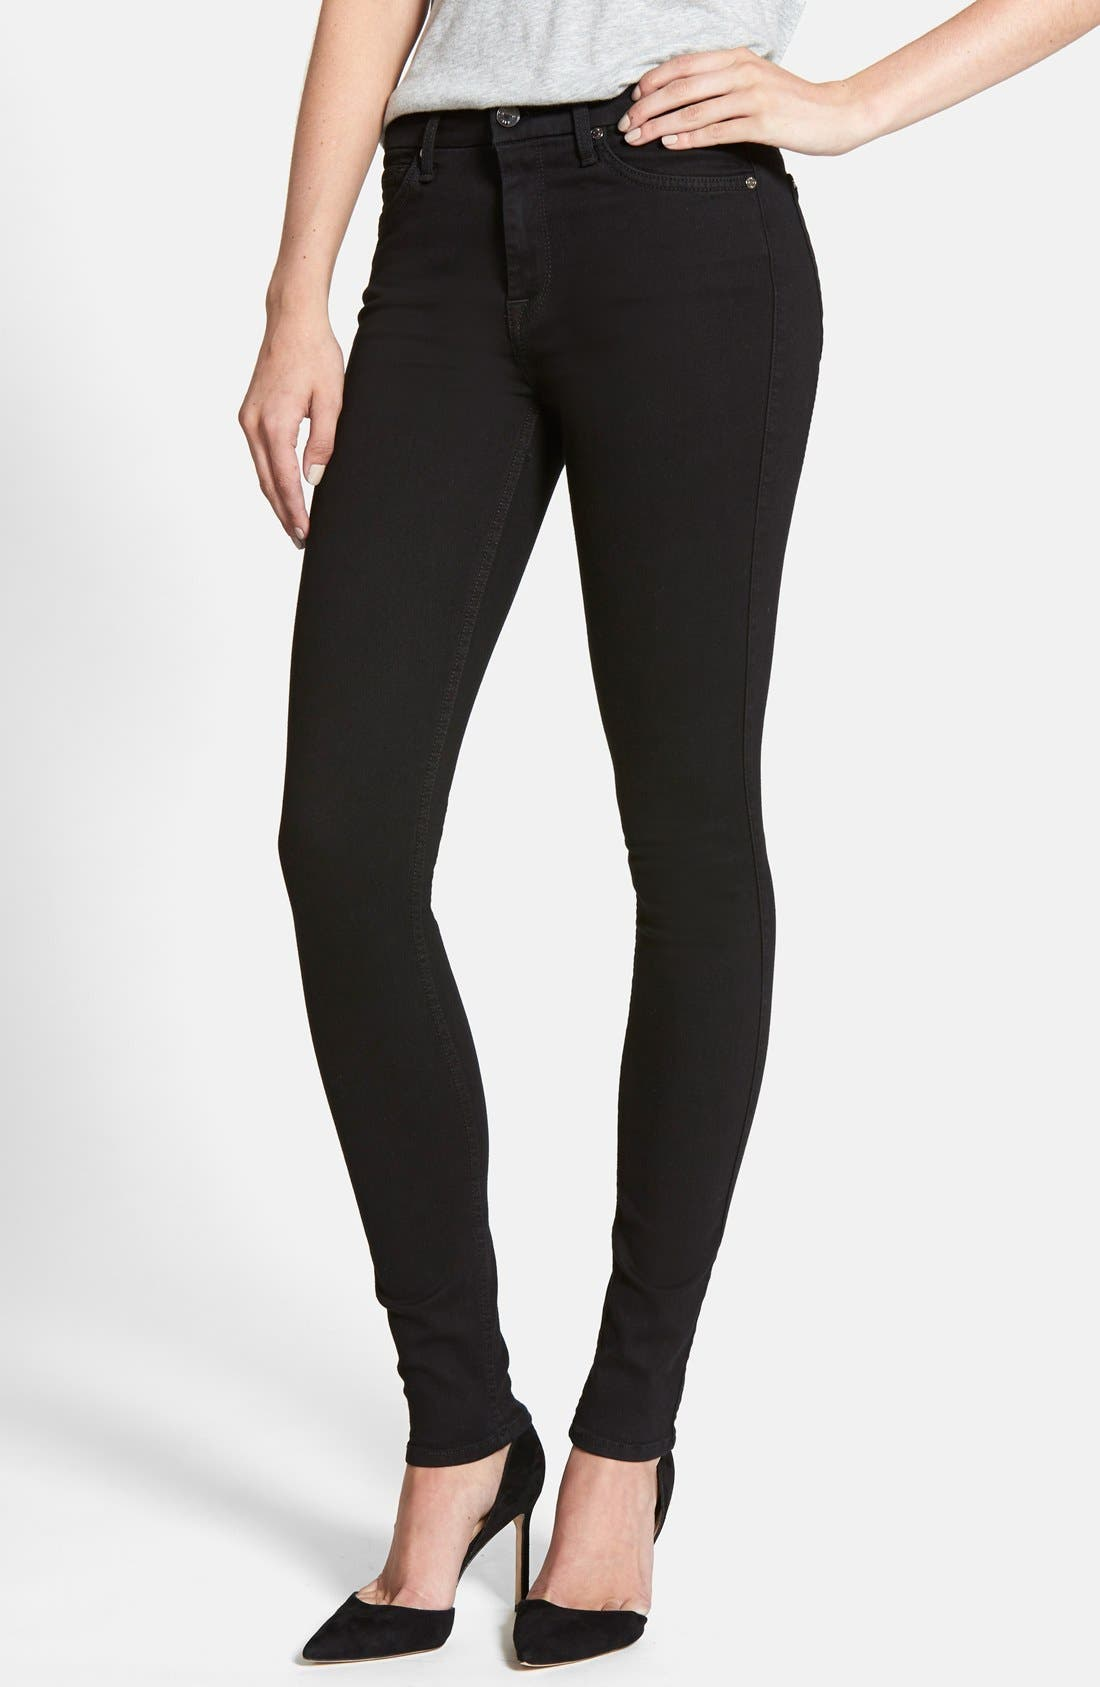 Alternate Image 1 Selected - 7 For All Mankind® 'Slim Illusion Luxe' High Waist Skinny Jeans (Black)